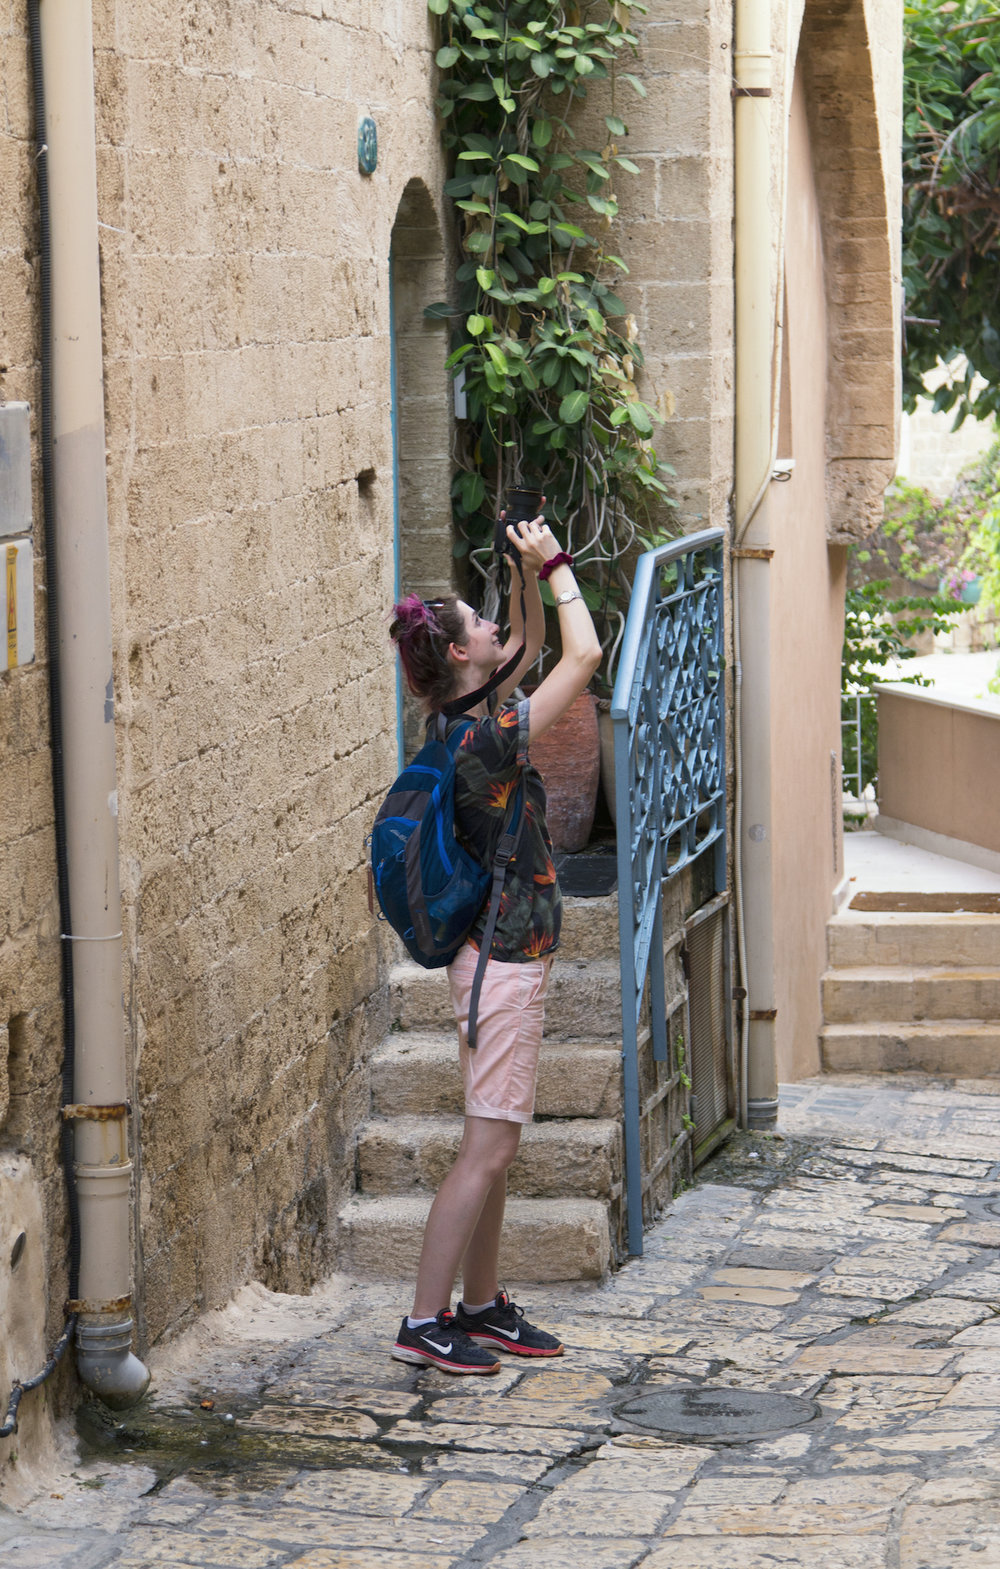 Geena Matuson (@geenamatuson) taking #travel photos in Tel Aviv, Israel.